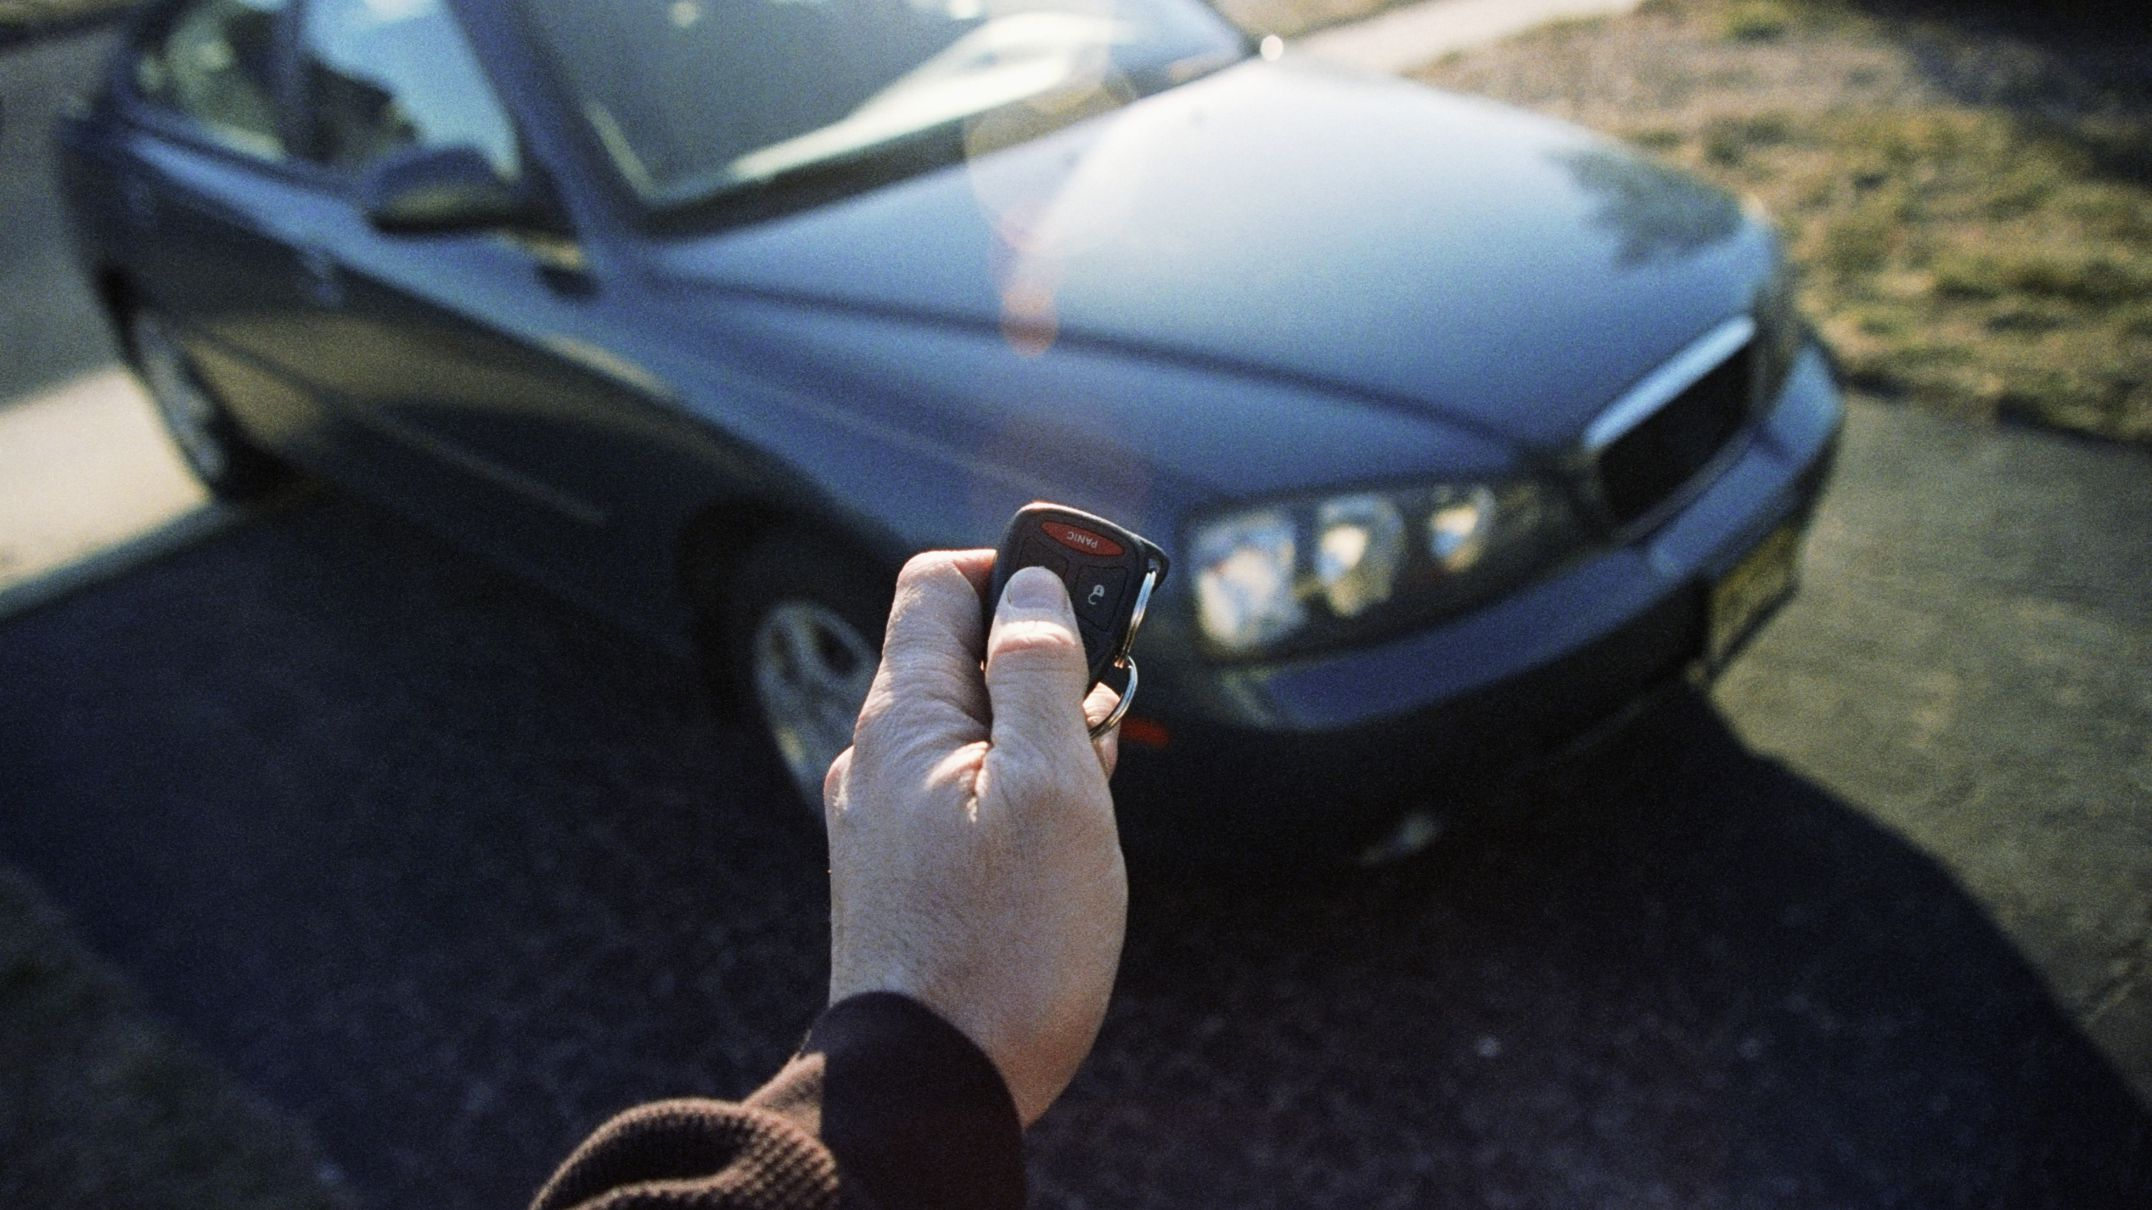 Is a Key Fob Really a Car Security System?